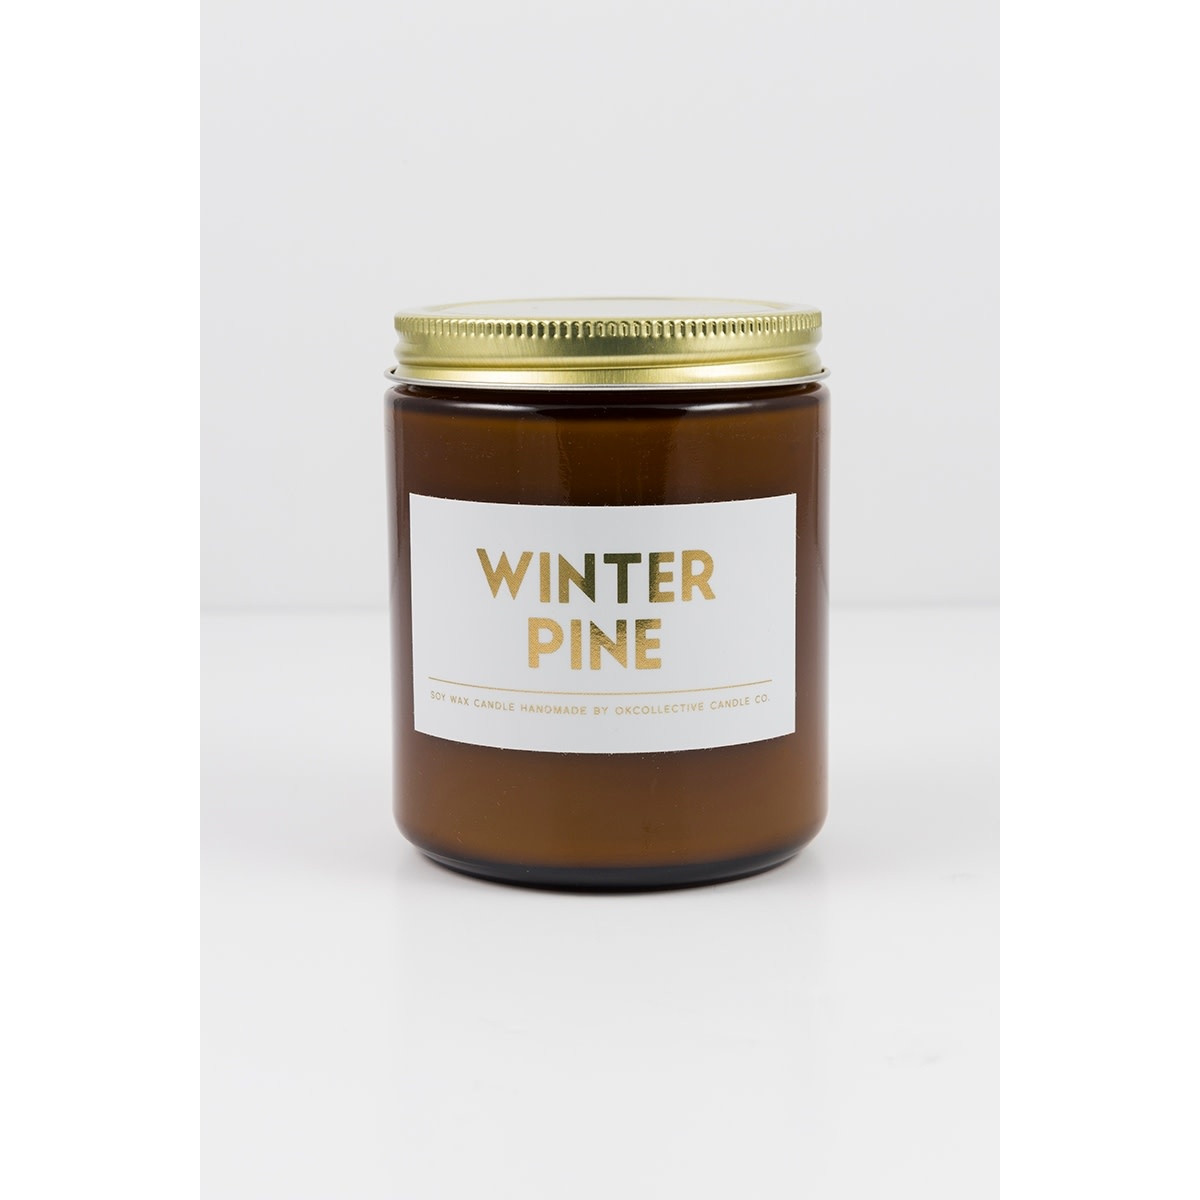 Winter Pine 8oz Candle